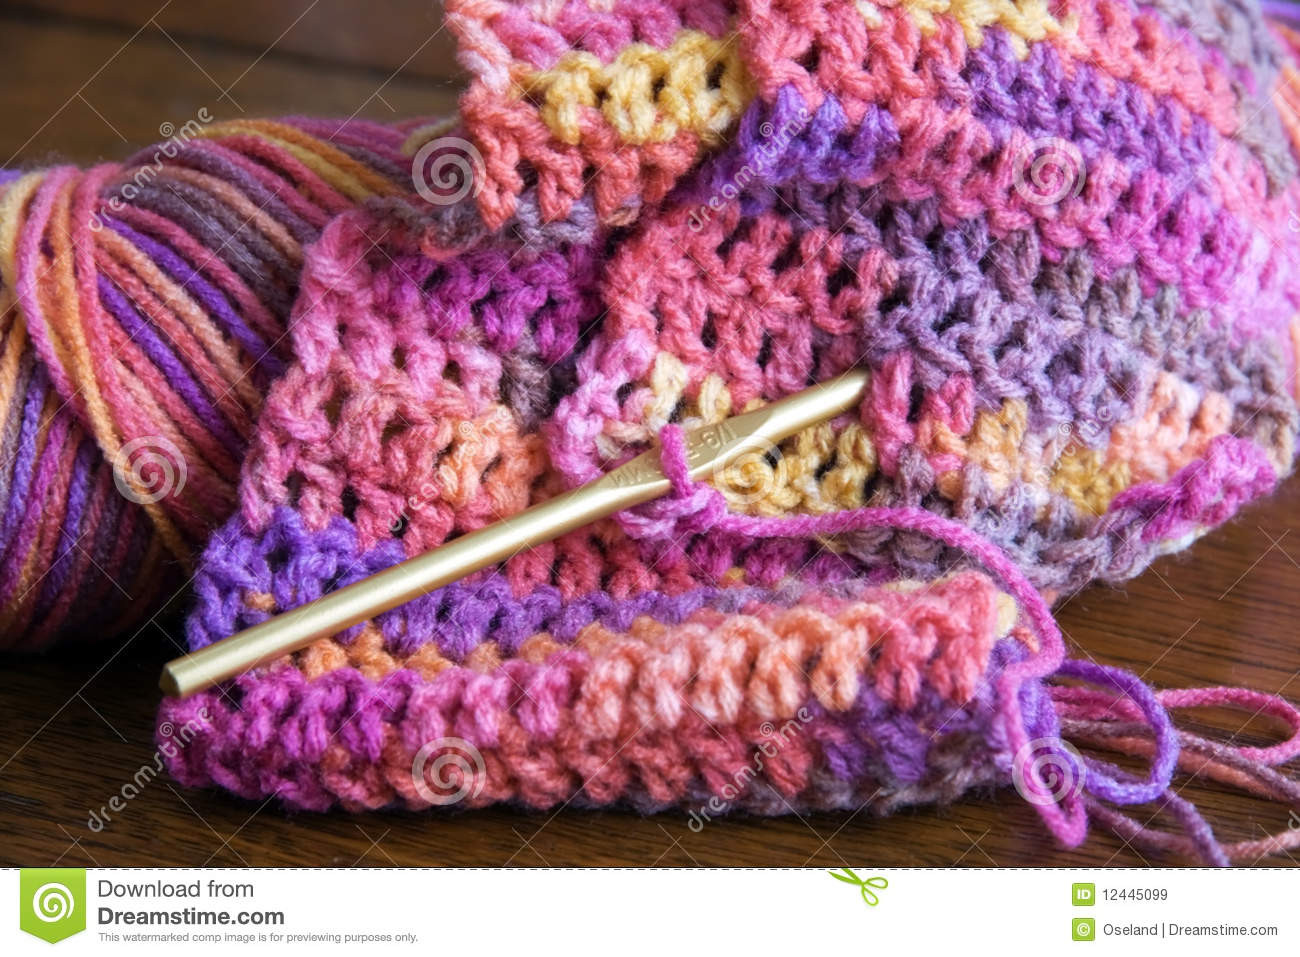 Crochet Yarn And Crochet Hook Royalty Free Stock